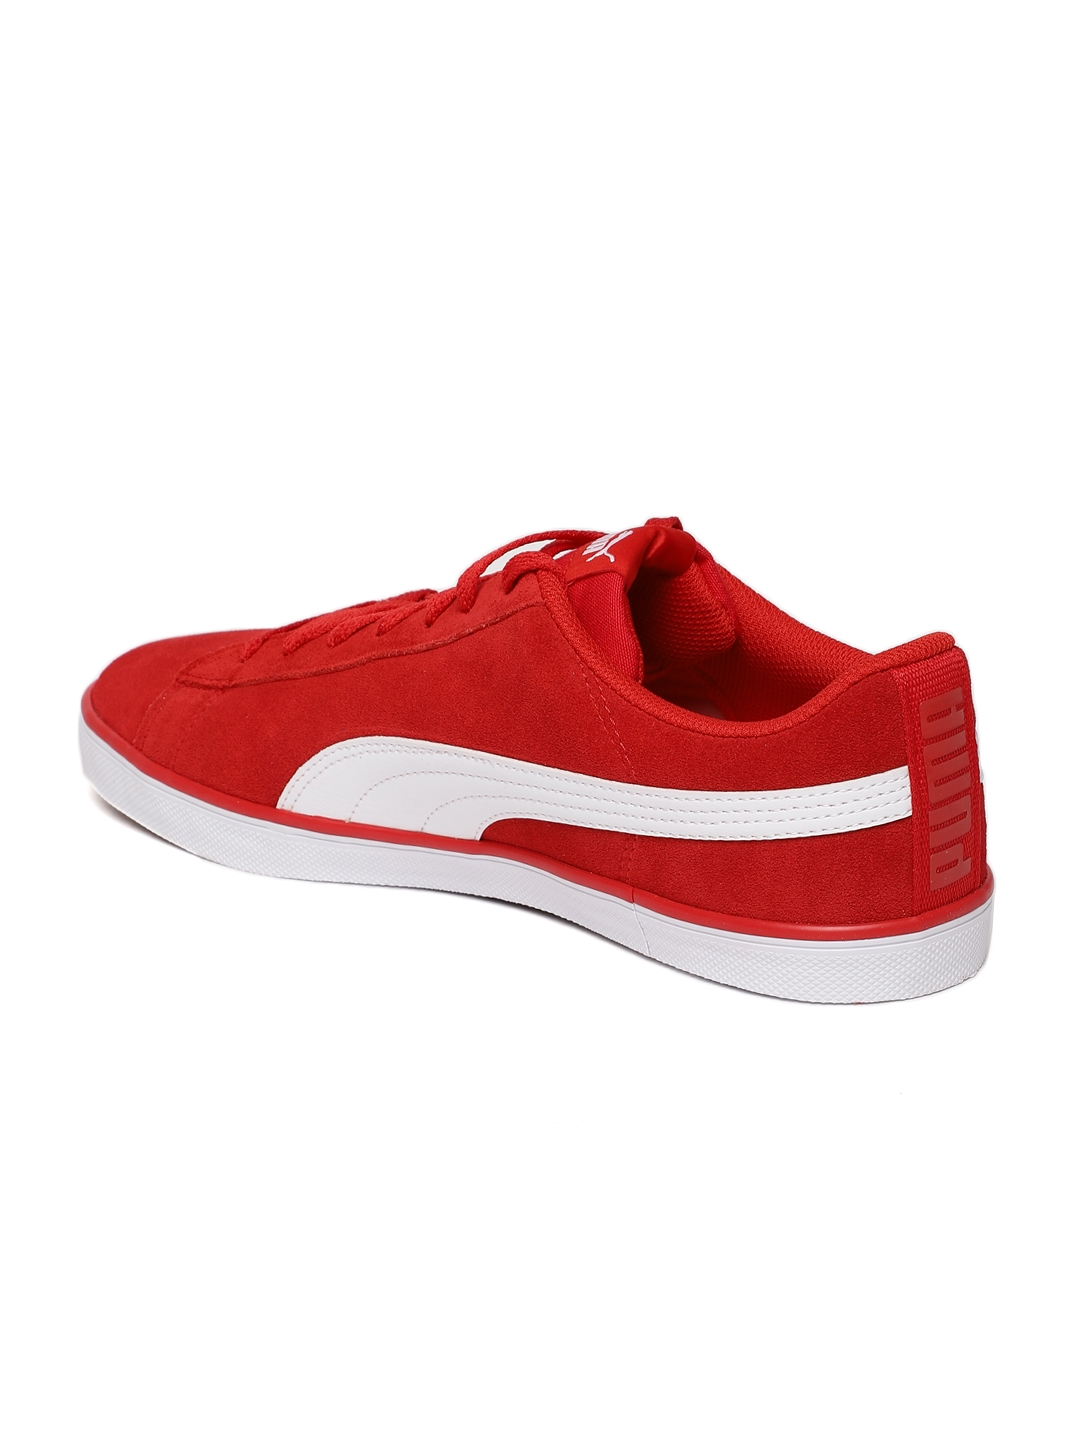 a9c47cae56bd Buy Puma Men Red Urban Plus SD Suede Sneakers - Casual Shoes for Men ...